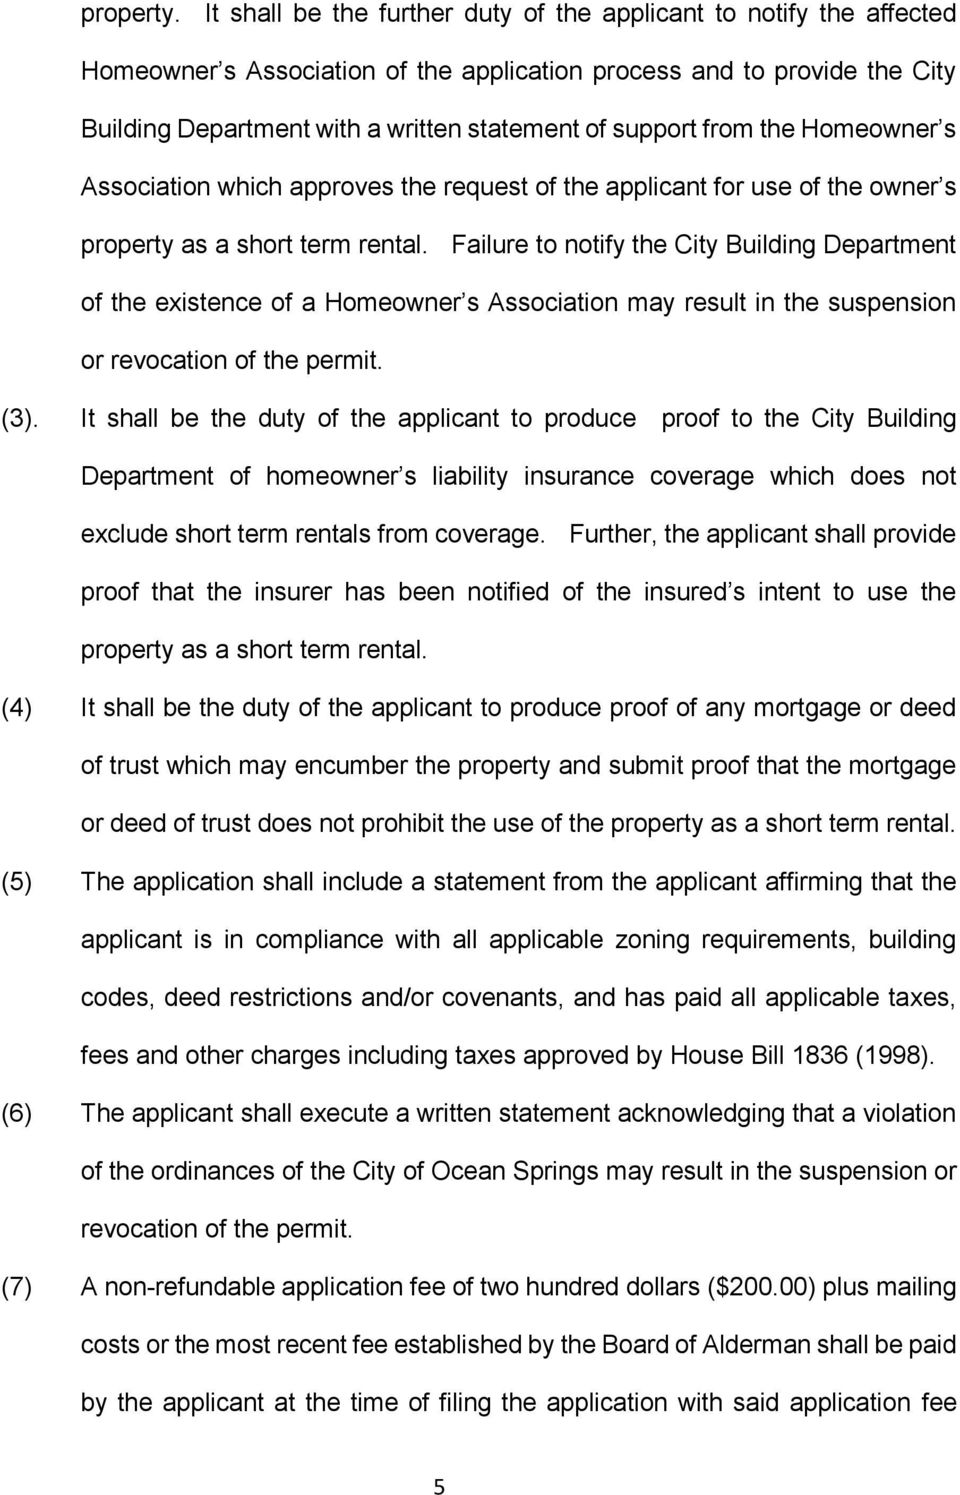 from the Homeowner s Association which approves the request of the applicant for use of the owner s property as a short term rental.